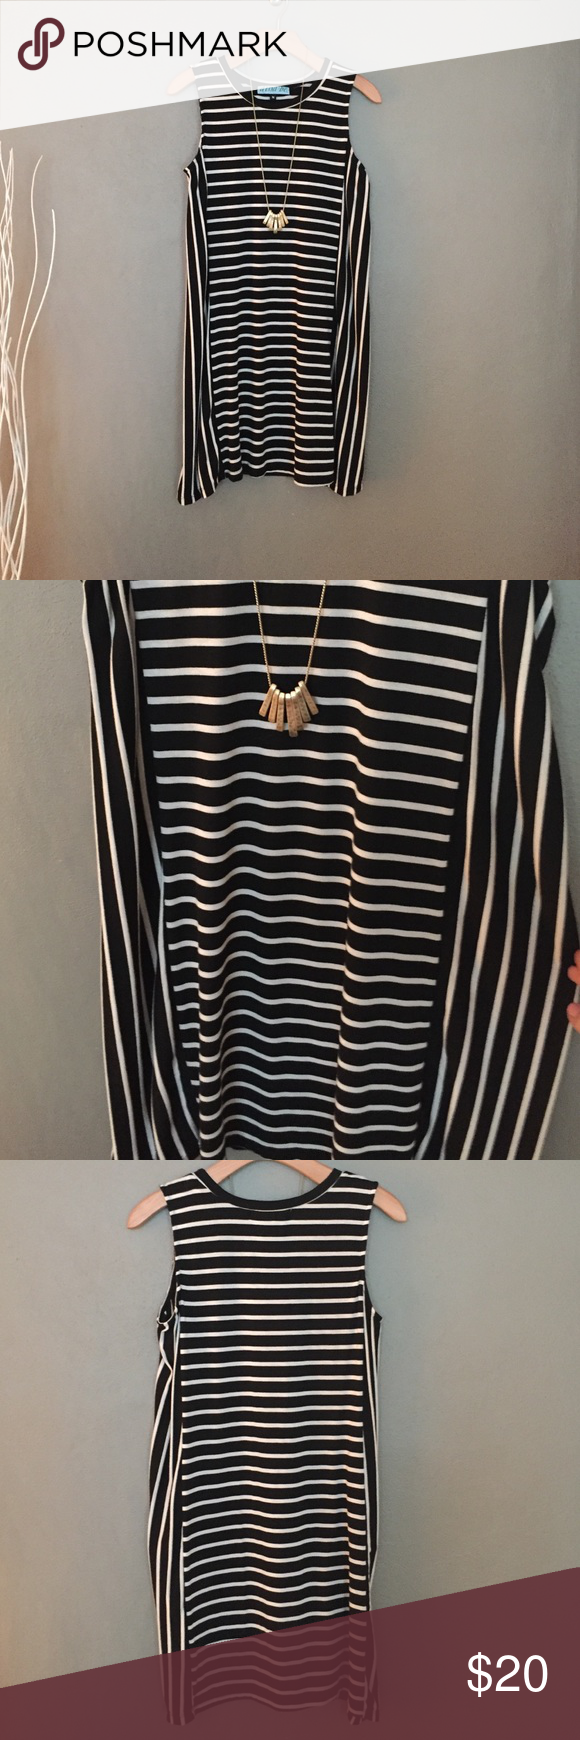 Francesca's shift dress Black and White Striped shift dress. Both vertical and horizontal strips on the dress, feels like a soft cotton. Francesca's Collections Dresses Mini